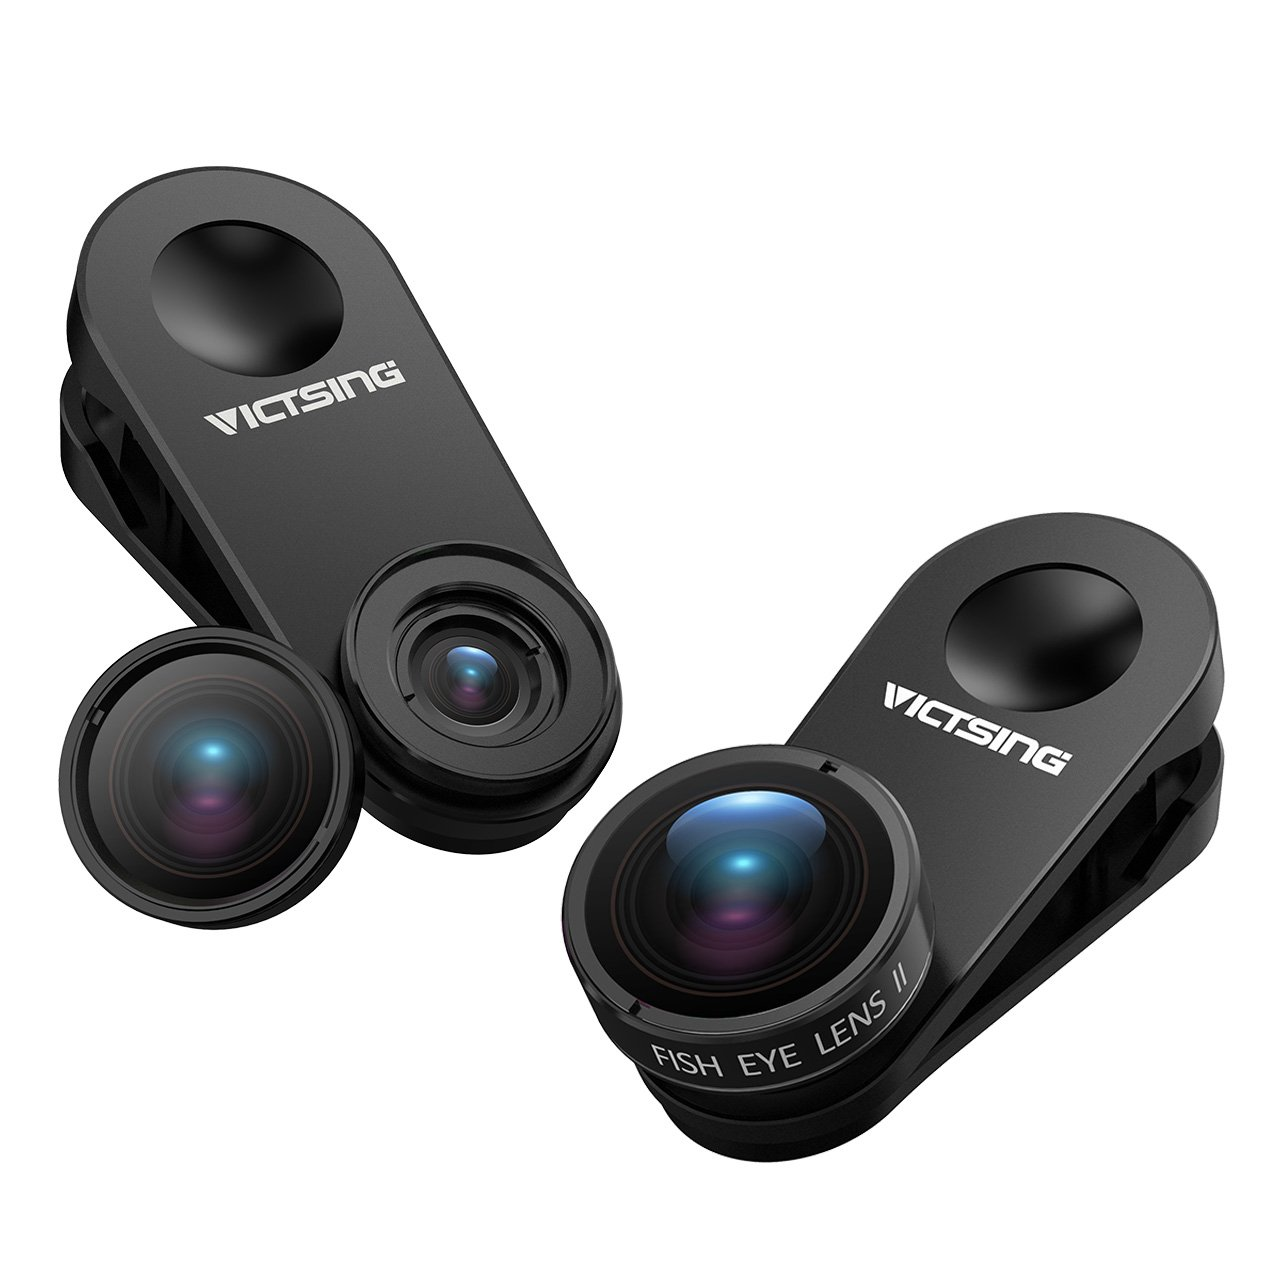 VicTsing 3 in 1 Clip-on Cell Phone Camera Lens Kit, 10X Macro Lens & 0.65X Wide Angle Lens & 180° Fisheye Lens for iPhone 8, 7, 6s, 6, 5s, Android & Most Smartphones